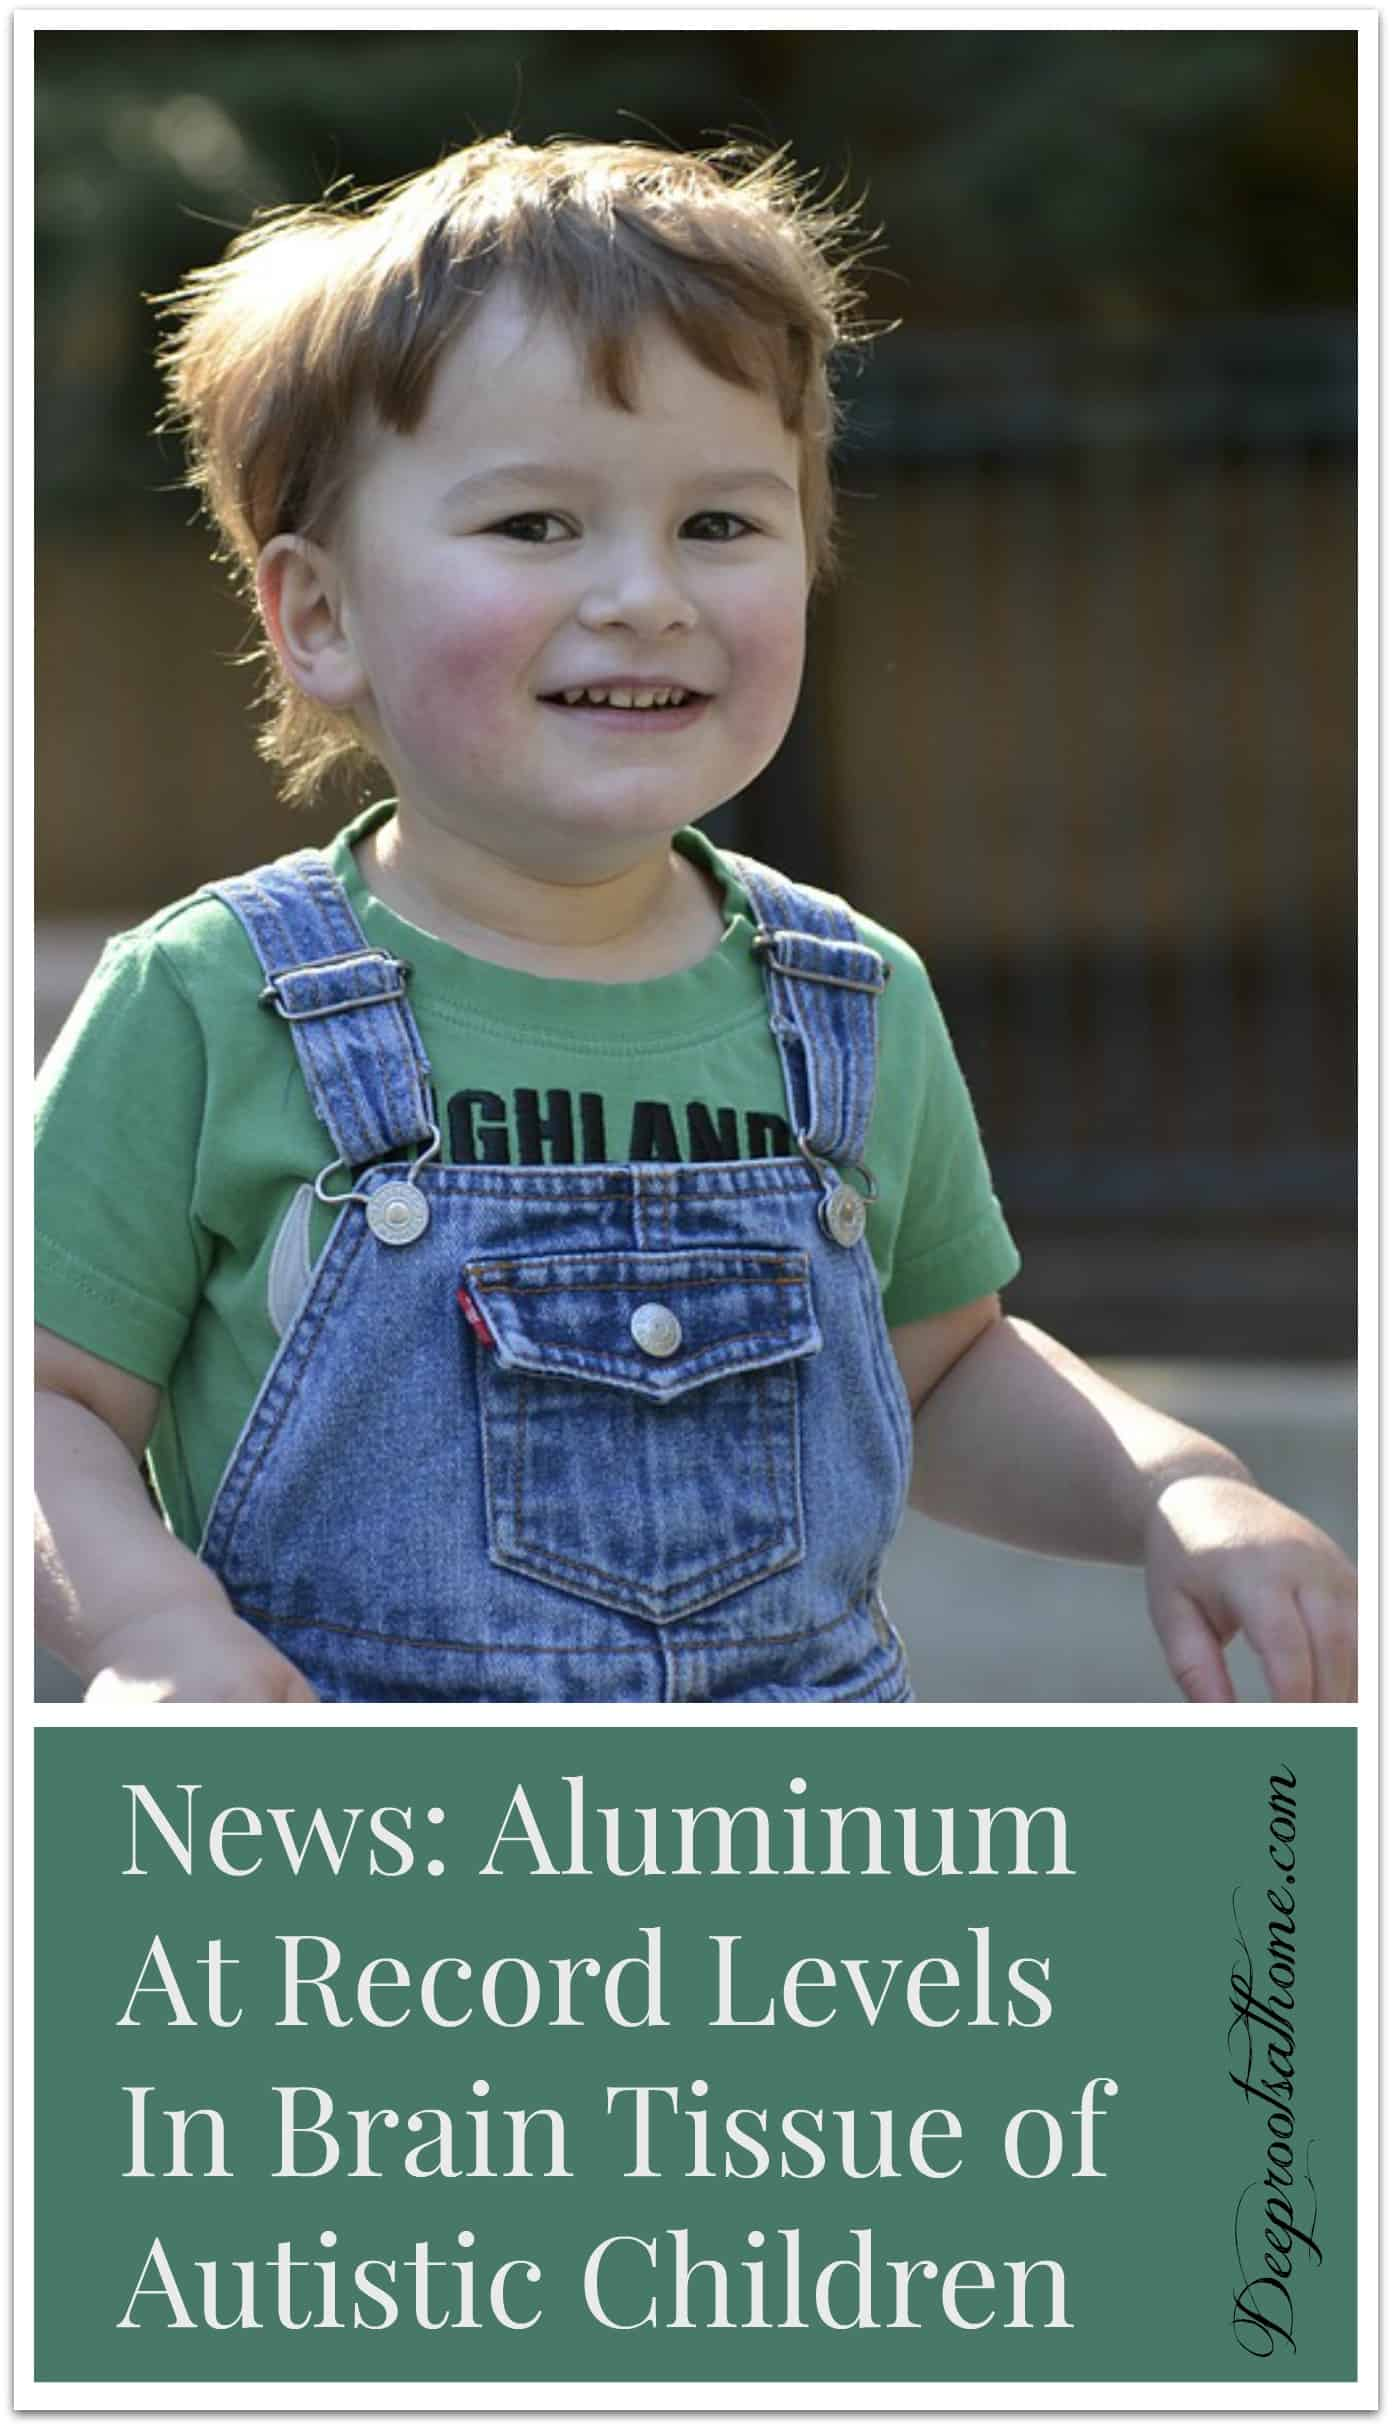 Aluminum At Record Levels In Brain Tissue of Autistic Children. The findings refute the FDA statement that